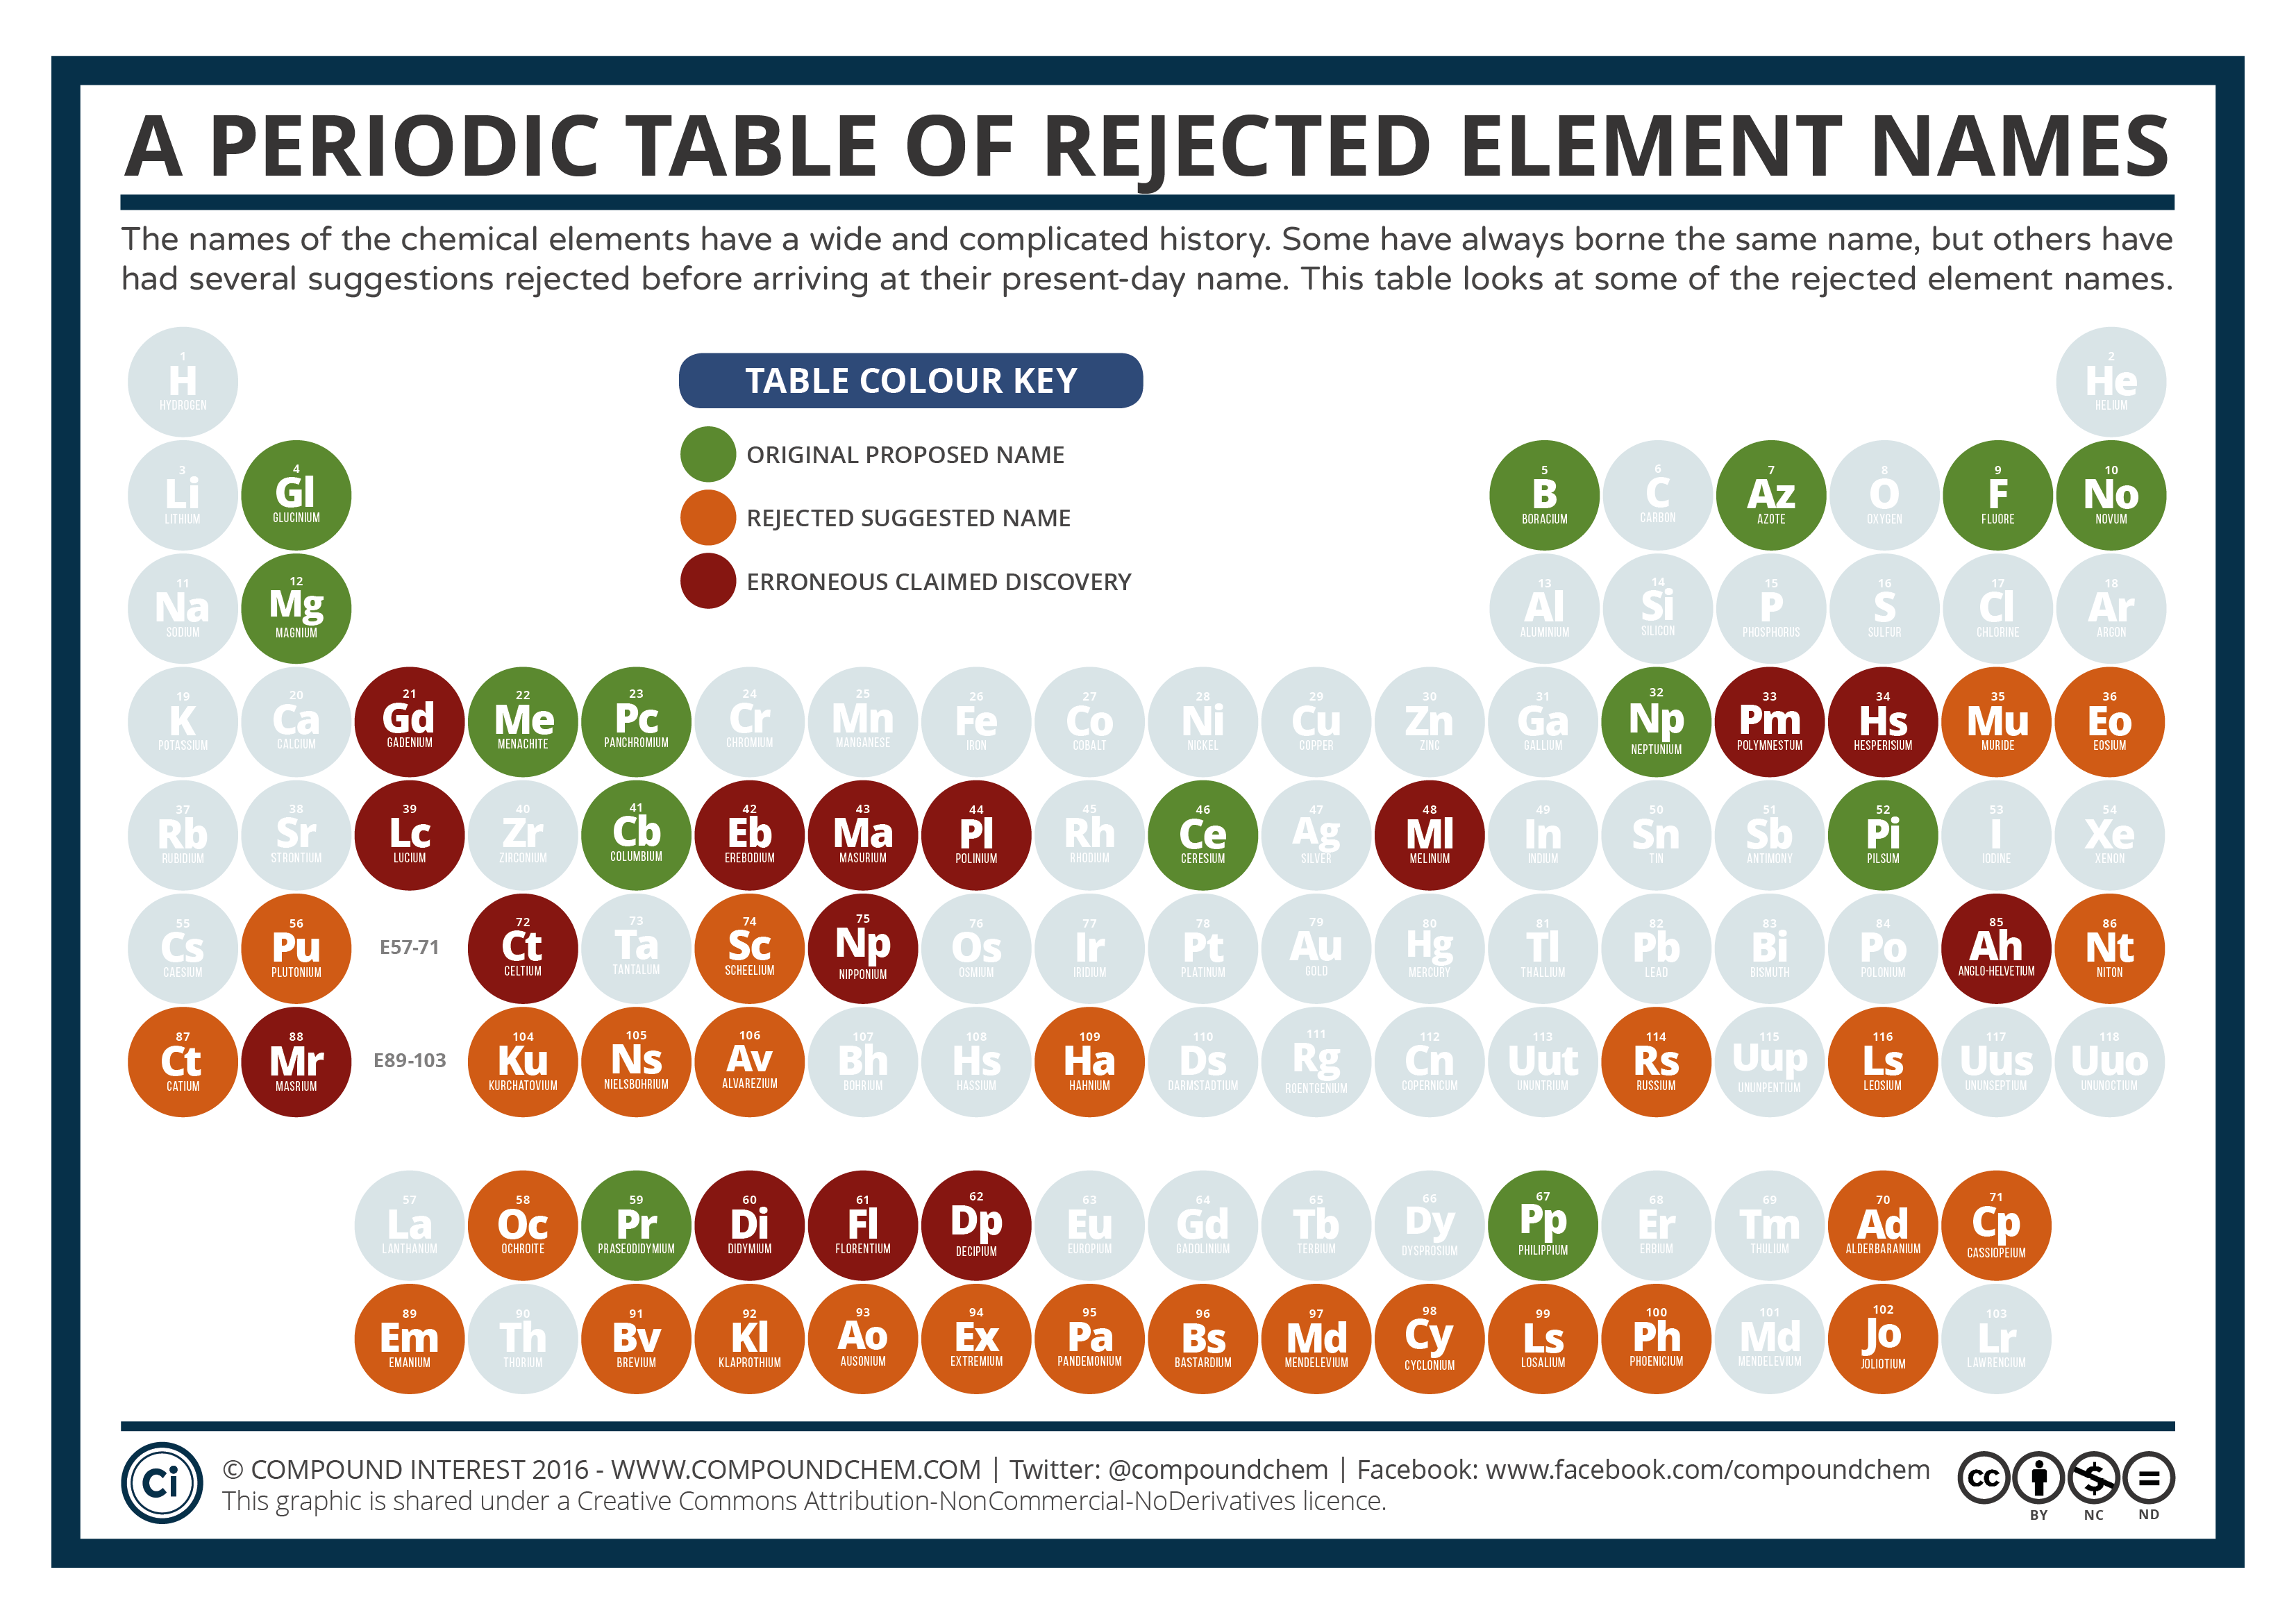 Compound interest a periodic table of rejected element names a periodic table of rejected element names gamestrikefo Image collections